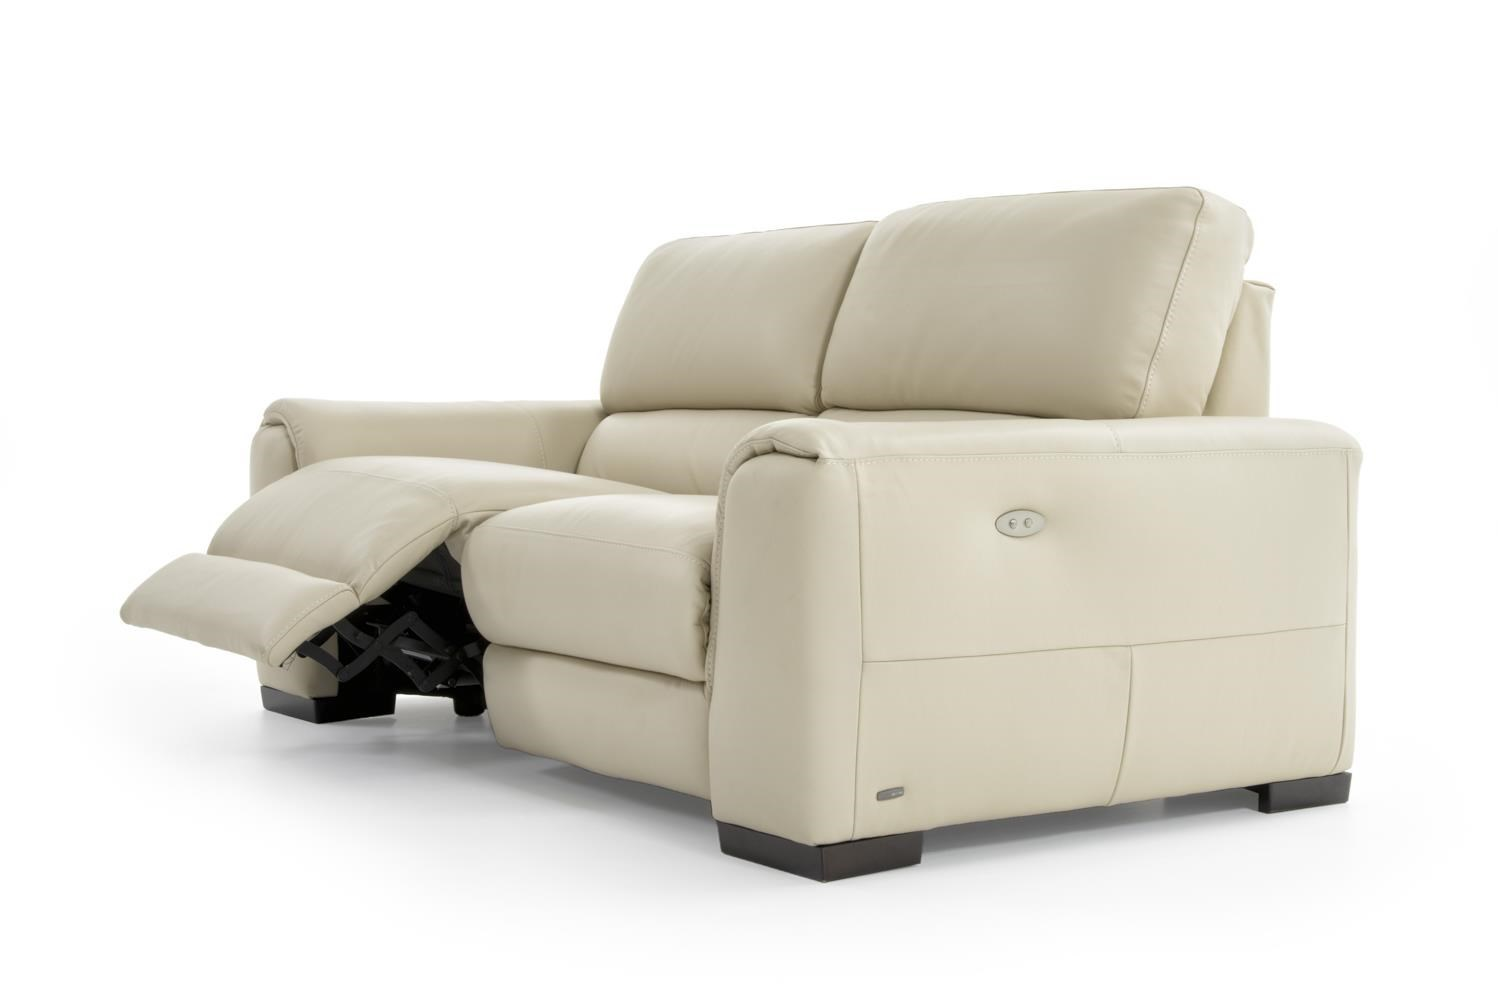 Natuzzi Editions Davide B969-193 CREAM Power Reclining Loveseat  sc 1 st  Baeru0027s Furniture & Natuzzi Editions Davide Power Reclining Loveseat - Baeru0027s ... islam-shia.org